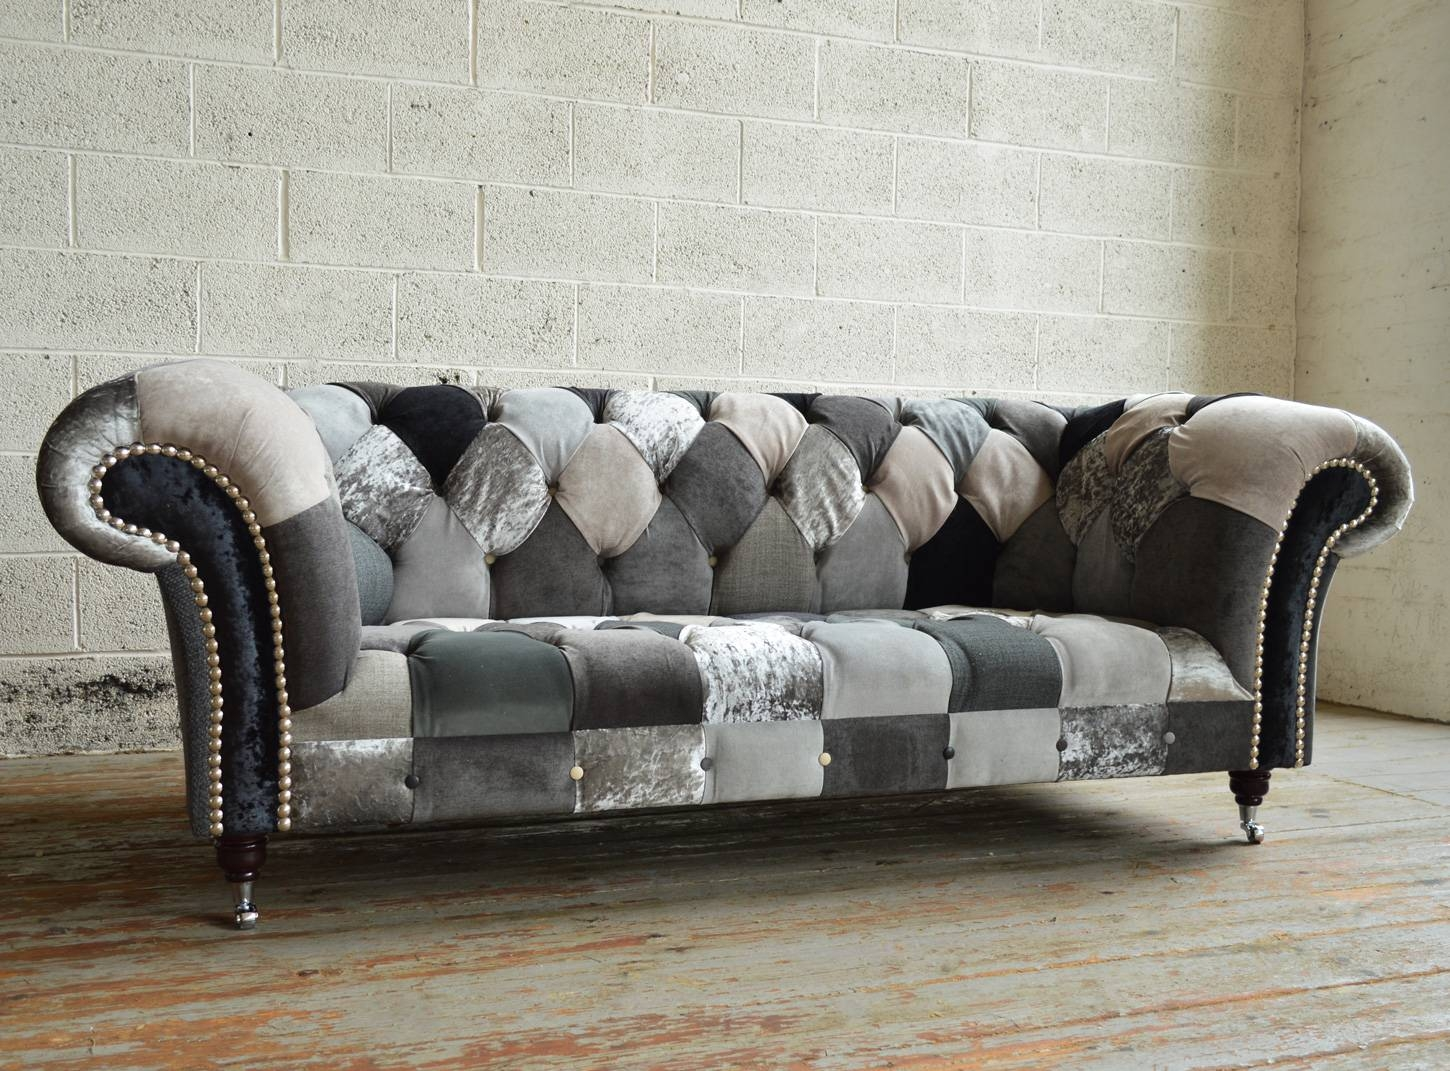 Brighton Patchwork Chesterfield Sofa | Abode Sofas Within Chesterfield Sofas (View 6 of 30)